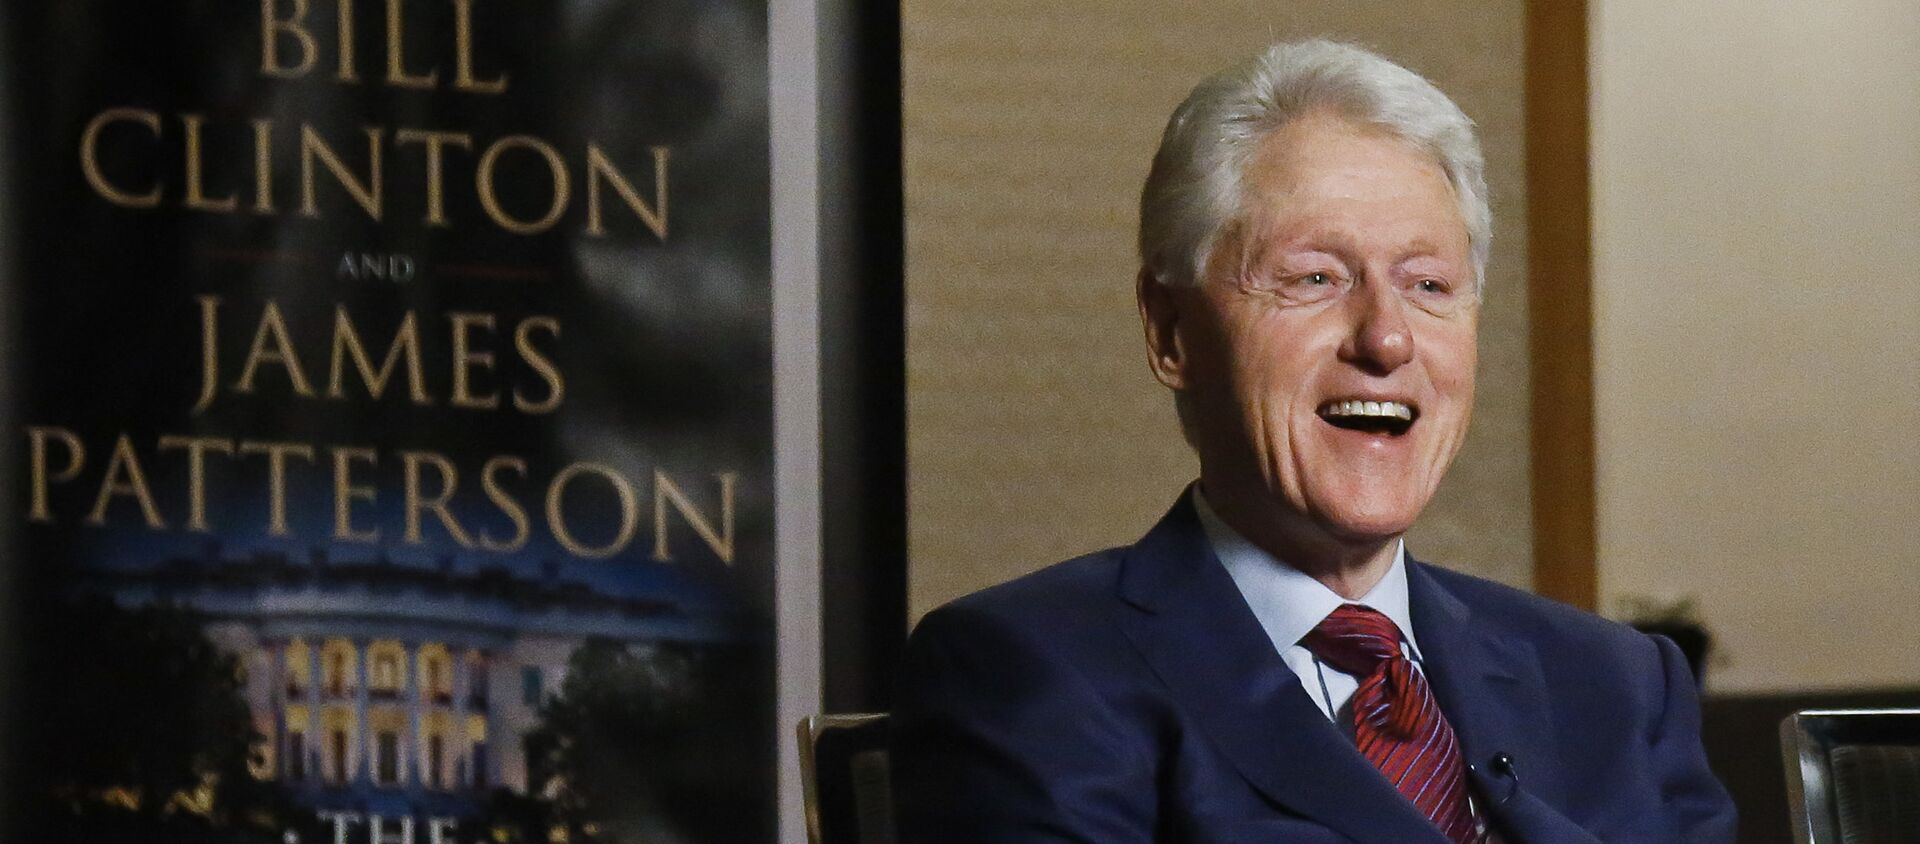 In this Monday, 21 May 2018 photo, former President Bill Clinton speaks during an interview about a novel he wrote with James Patterson, The President is Missing, in New York. - Sputnik International, 1920, 03.09.2021